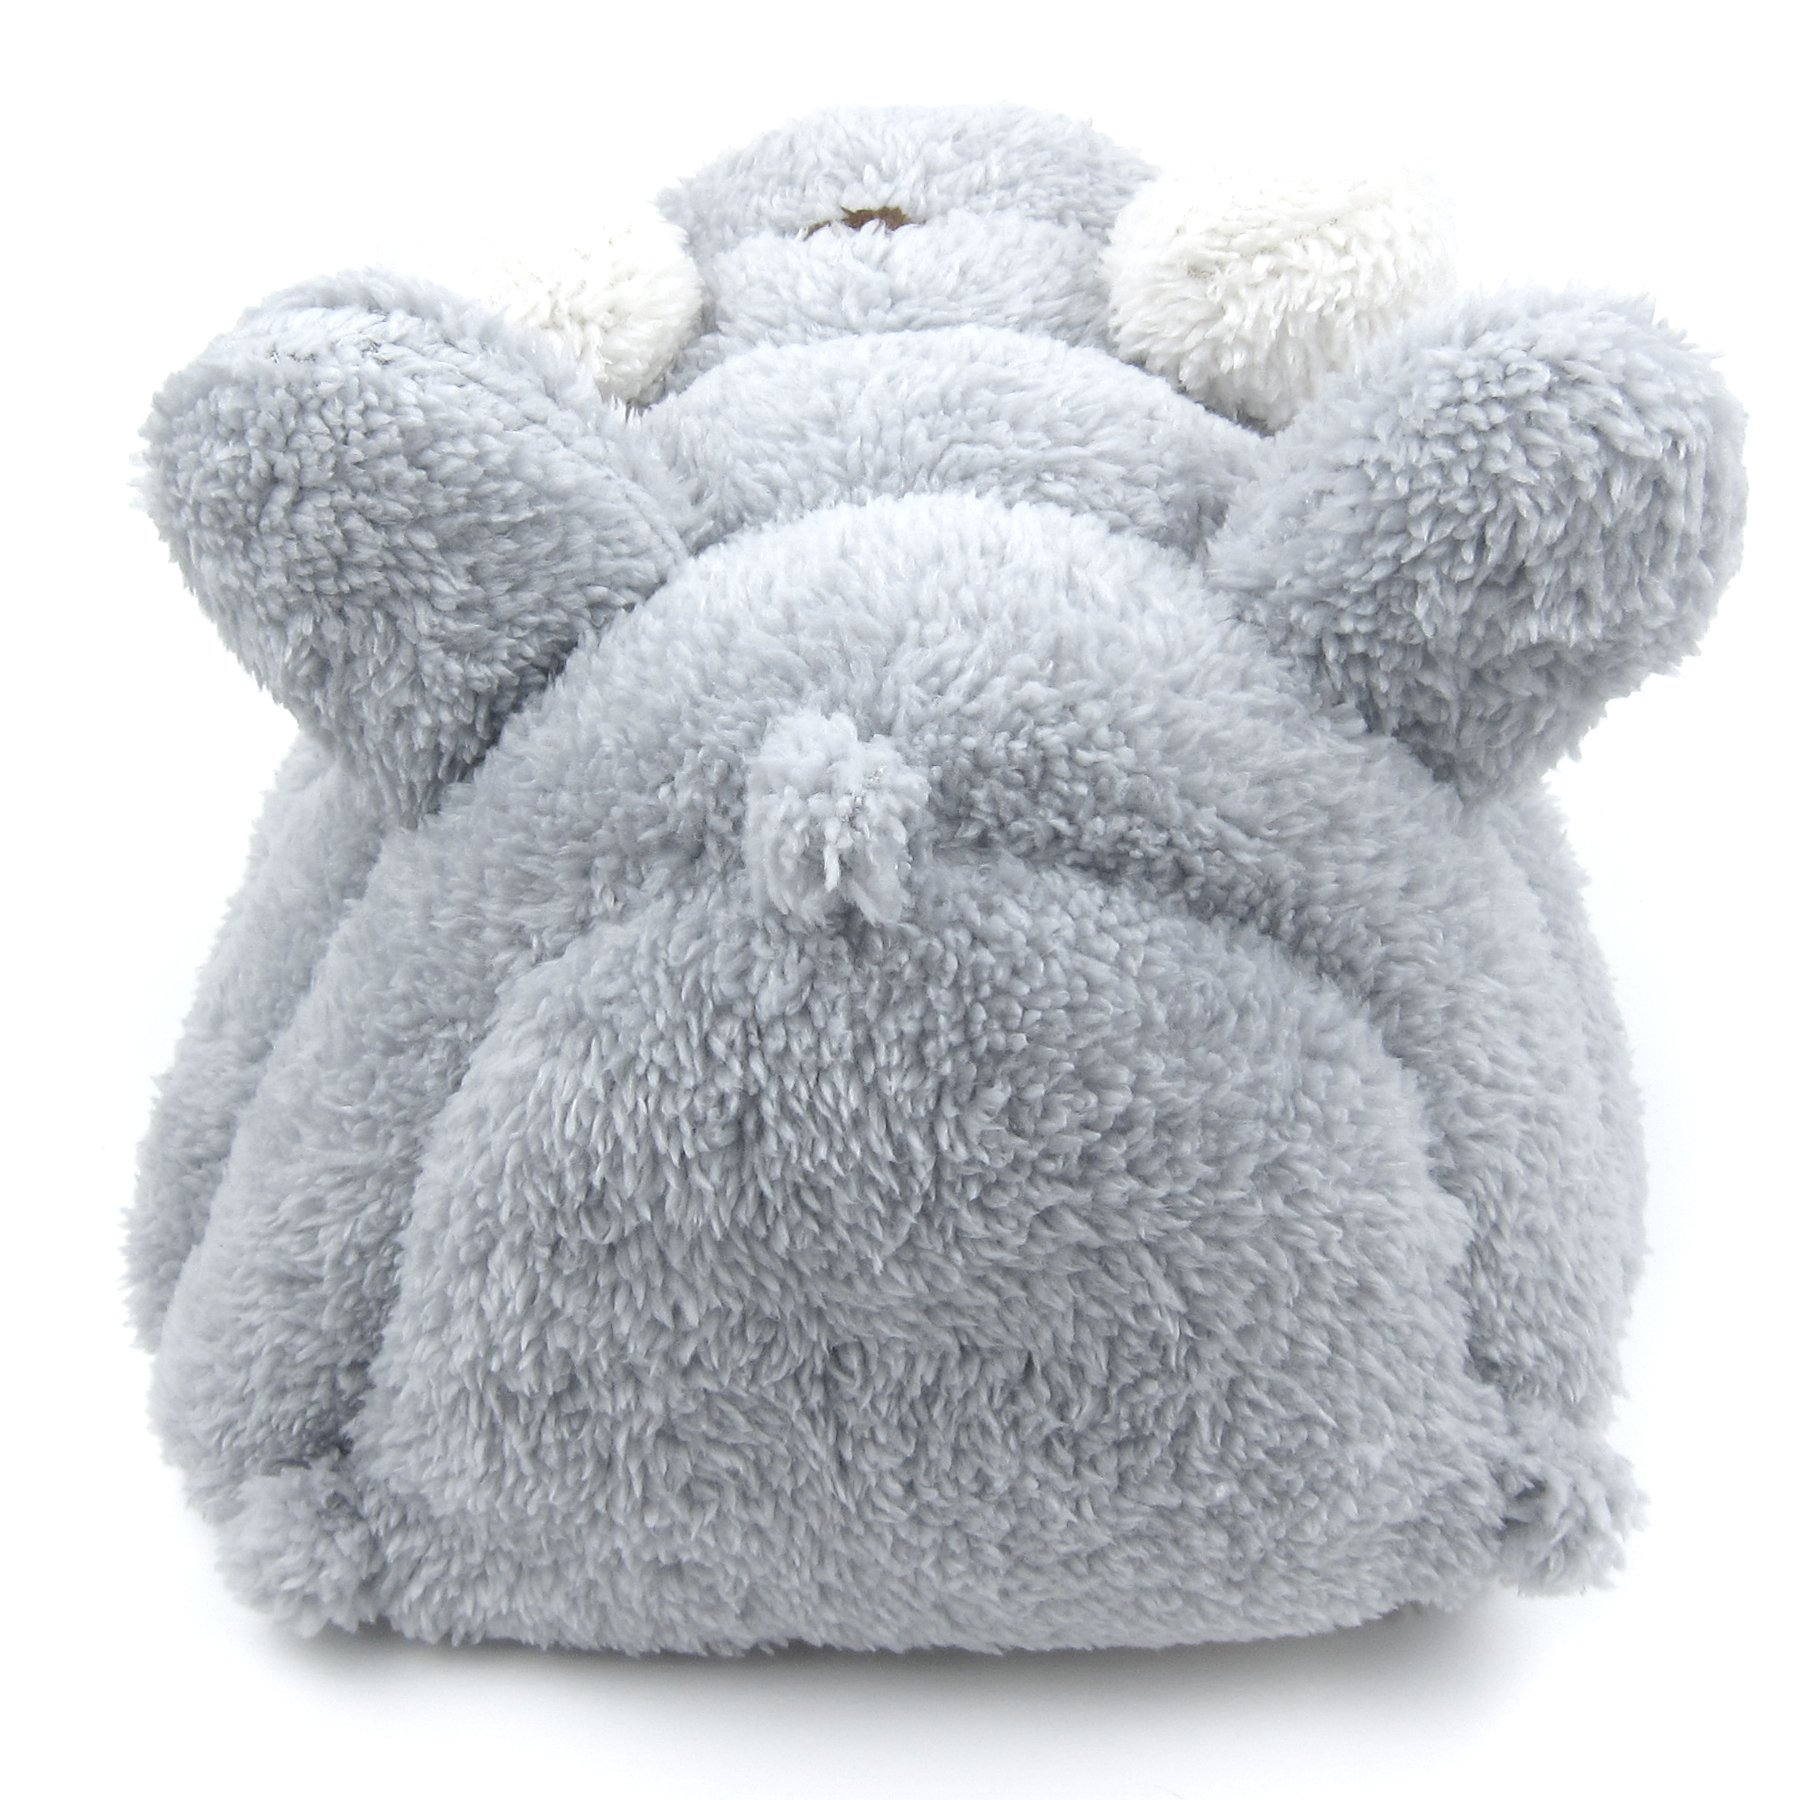 Alfie Pet by Petoga Couture - Tobin Sleeping Cave Bed for Small Animals like Dwarf Hamster and Mouse - Color: Grey by Alfie (Image #5)